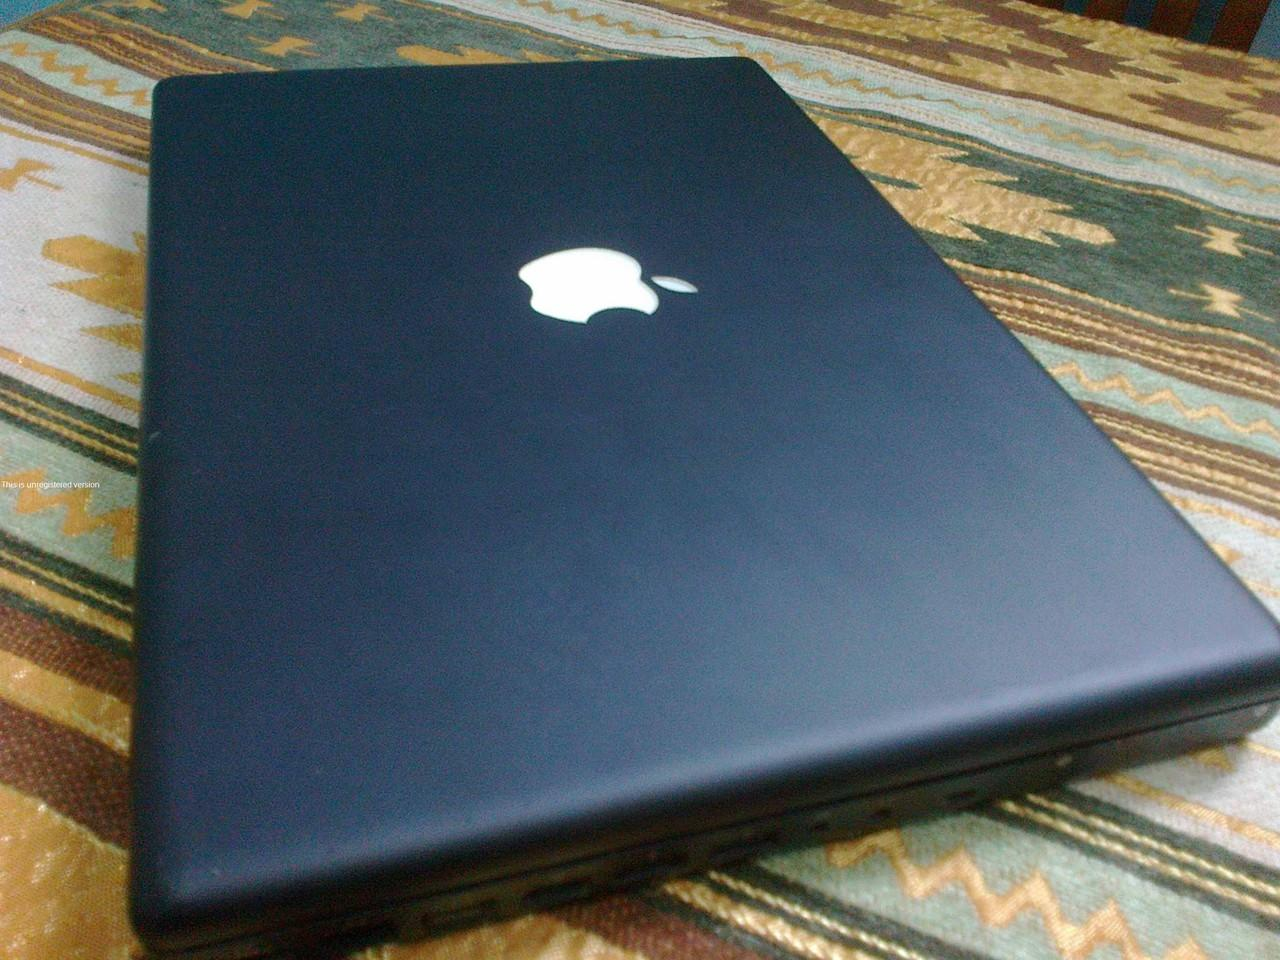 Macbook Black 1.1 Core Duo/2g/250g/ Baterai 3 Jam